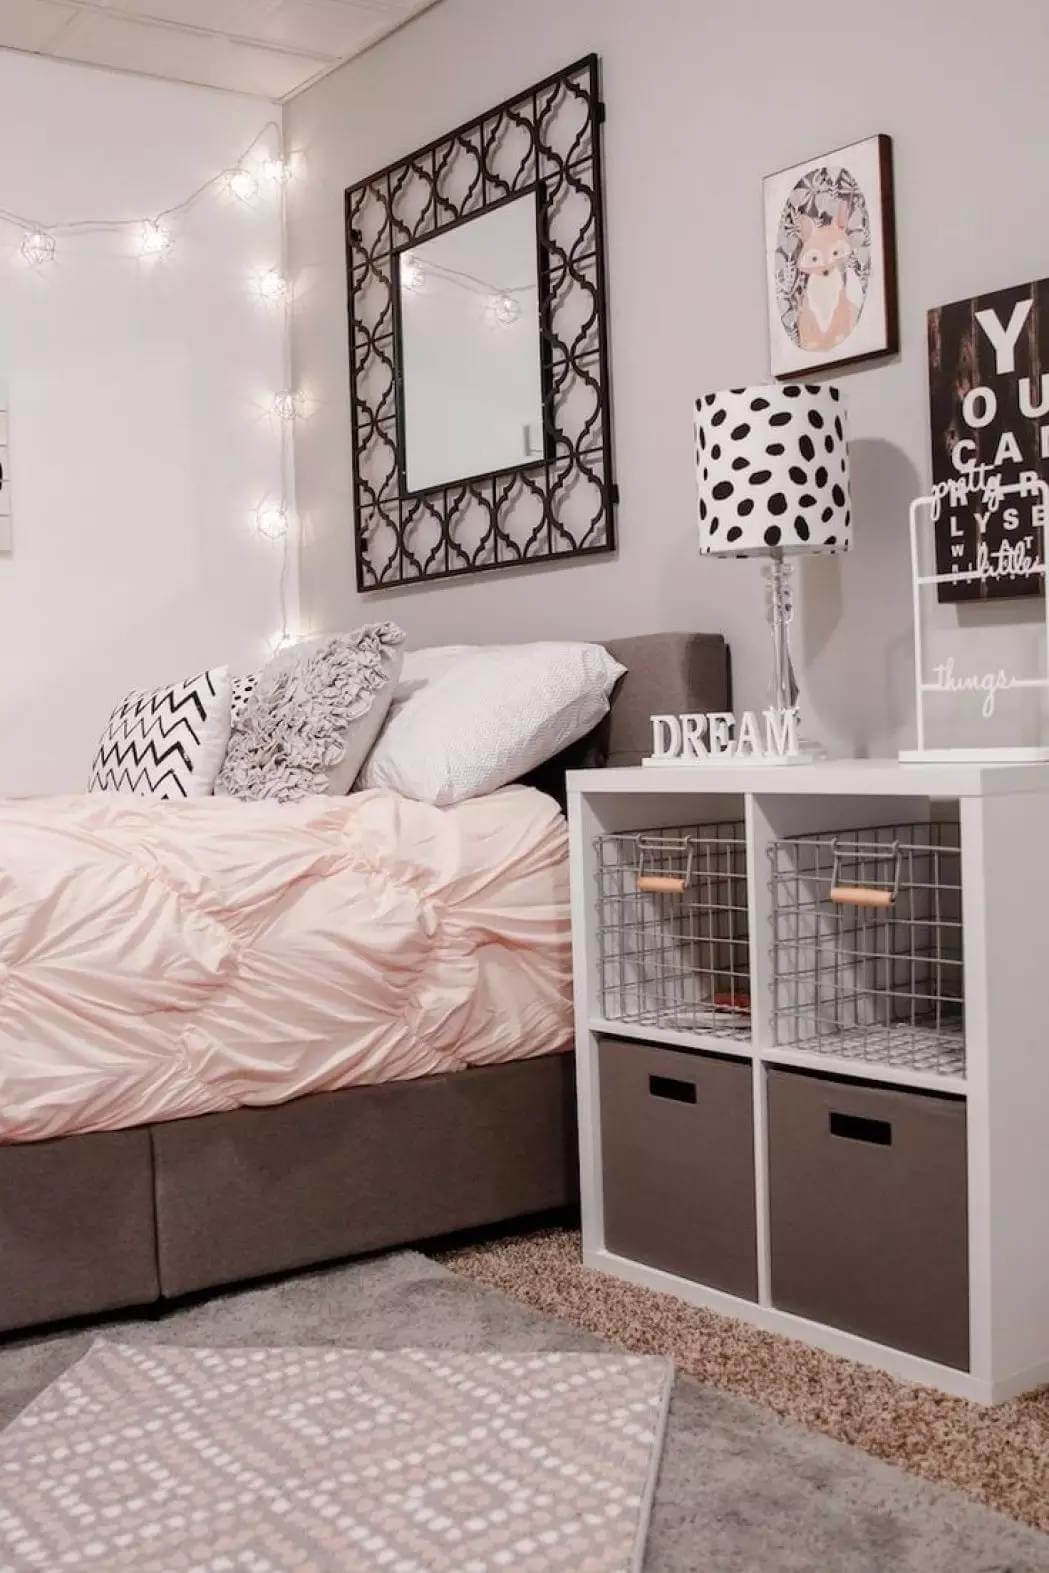 38 Best Bedroom Organization Ideas And Projects For 2020